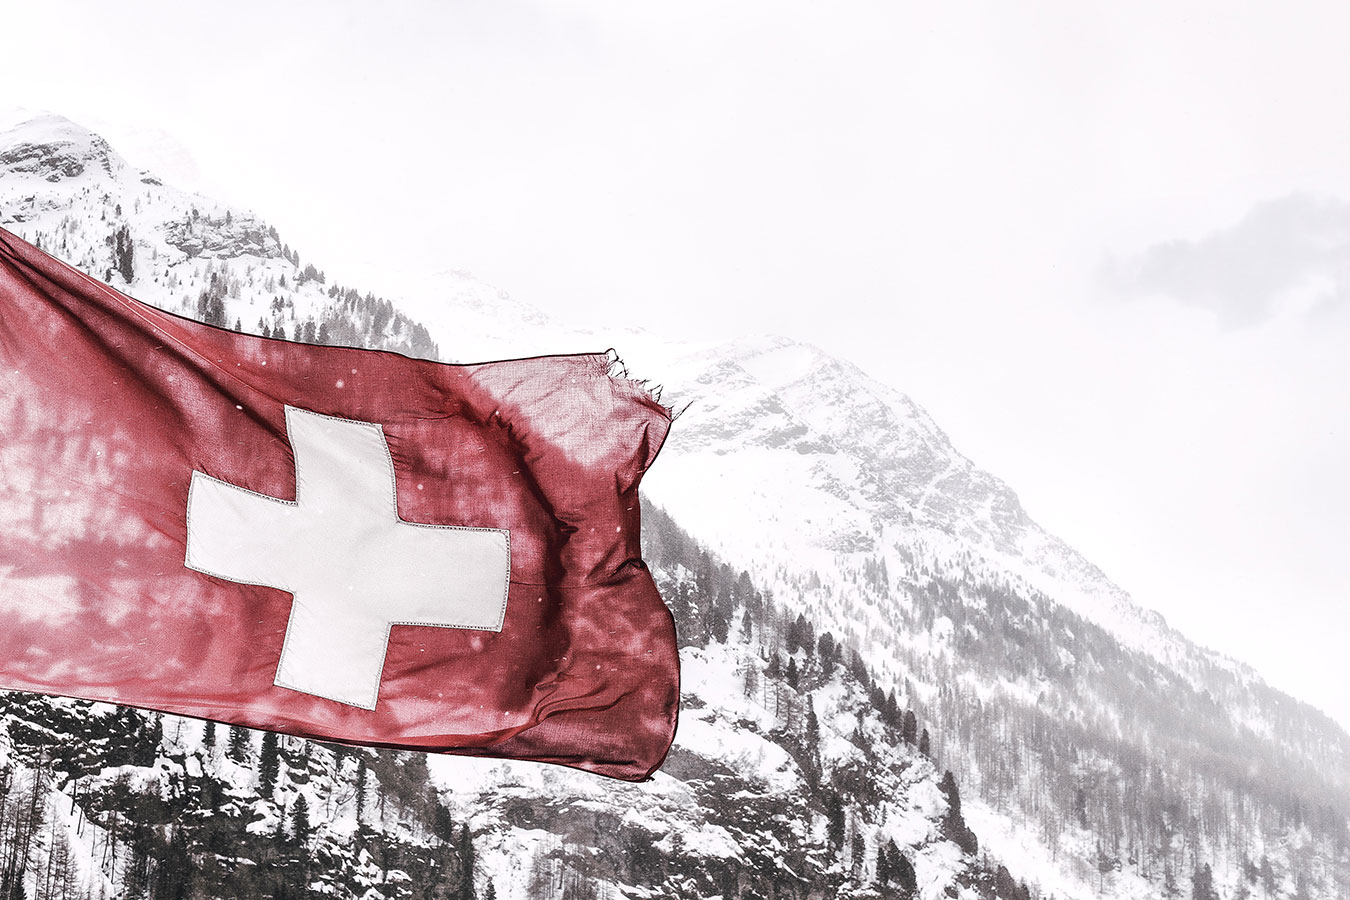 ch-swiss-national-day-2018-flag-mountain.jpg